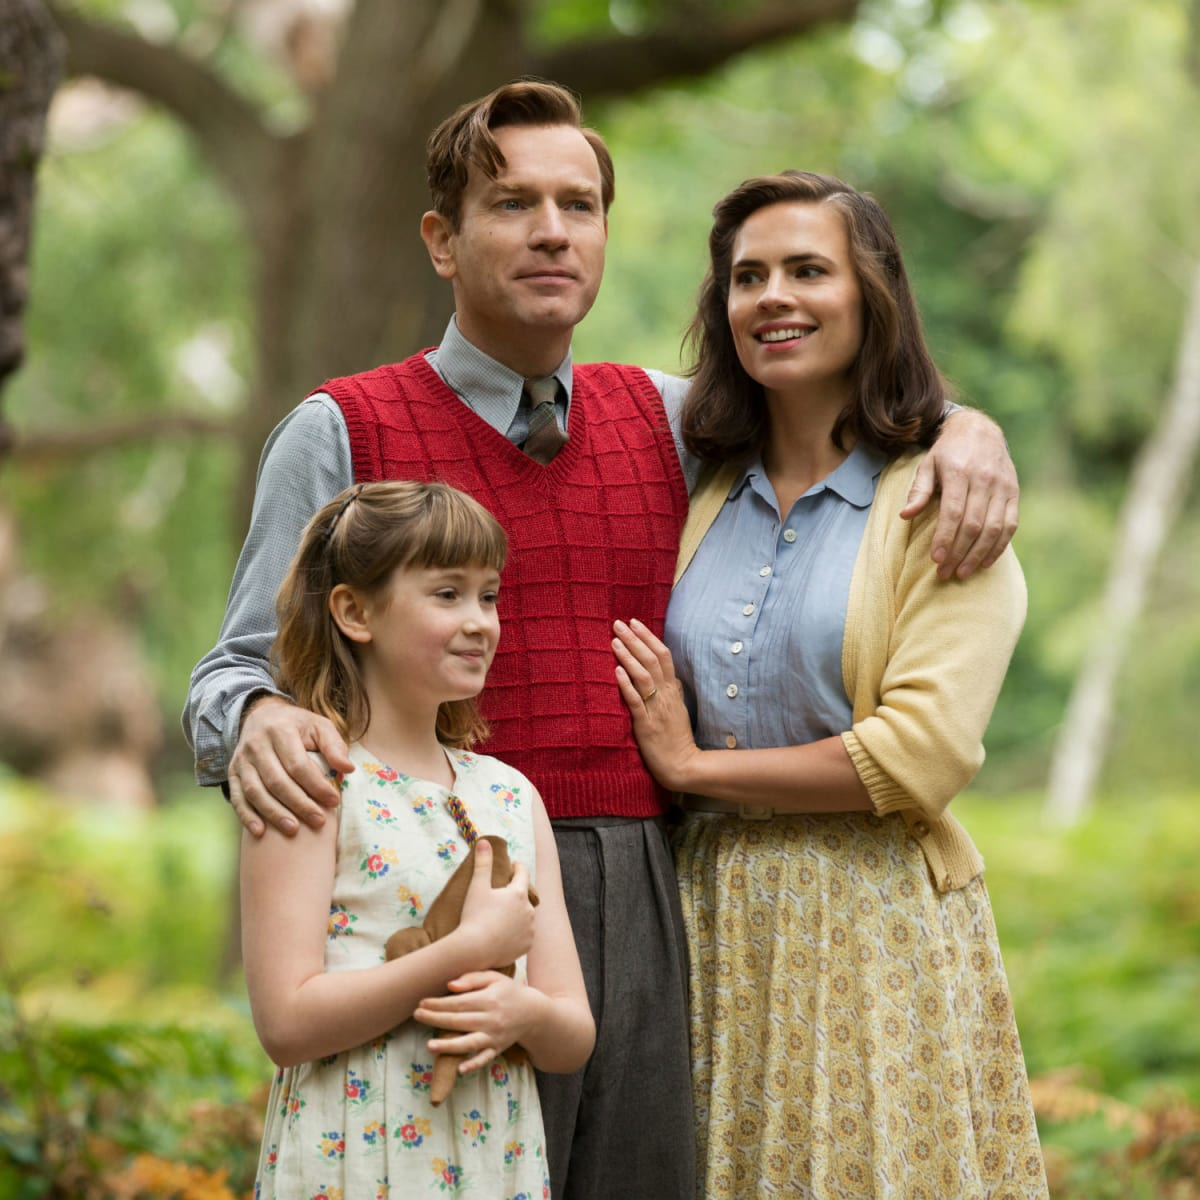 Bronte Carmichael, Ewan McGregor, and Hayley Atwell in Christopher Robin